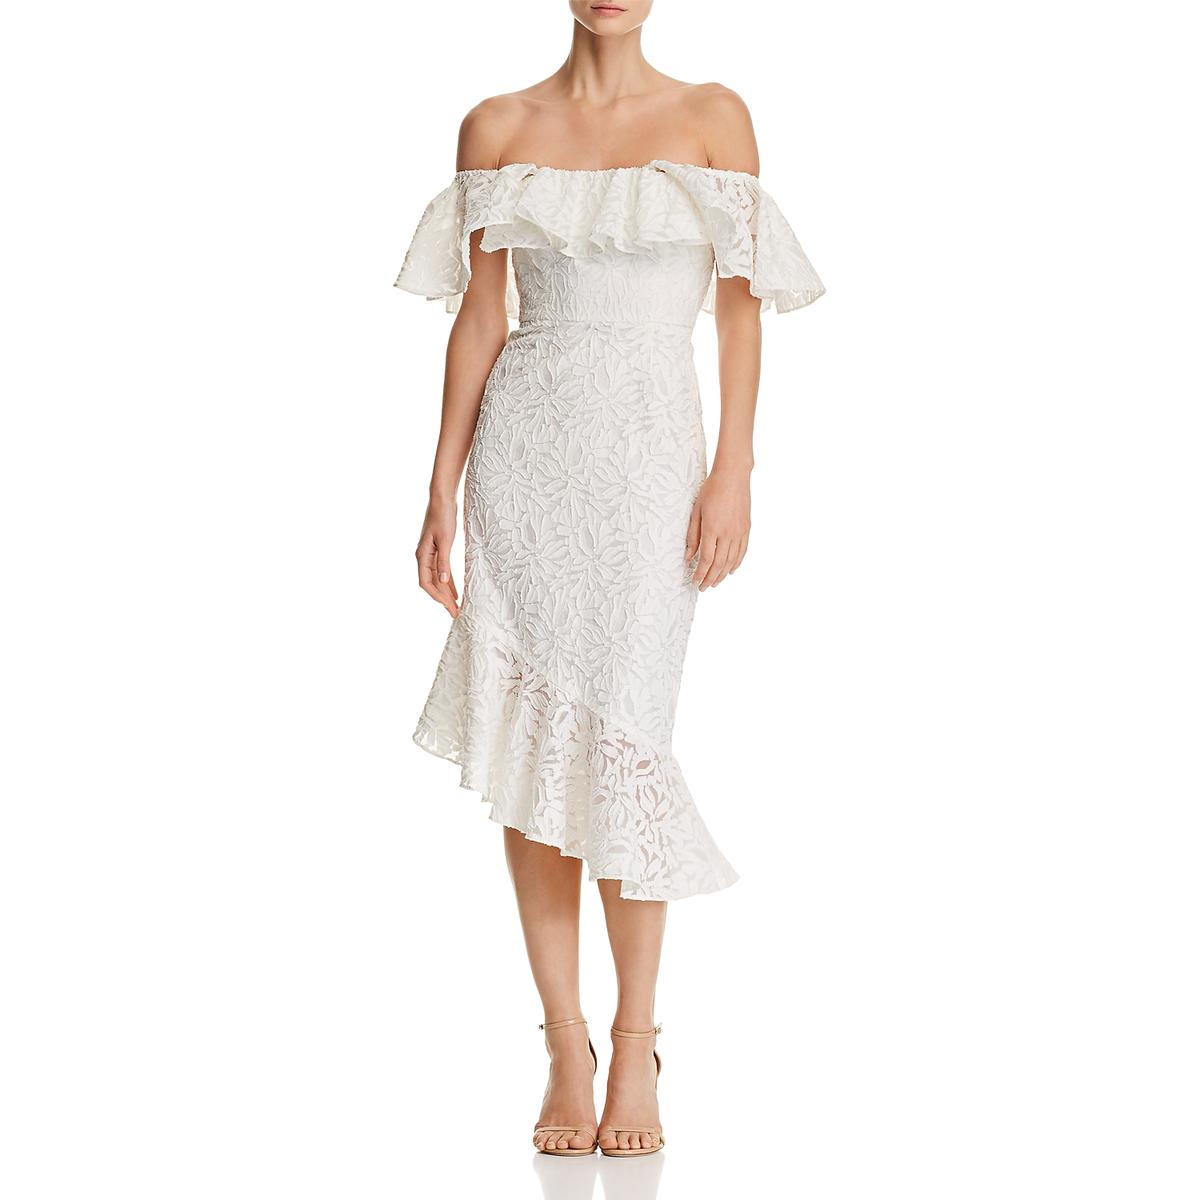 C Meo Collective damen Need You More Ivory Lace Ruffled Midi Dress L BHFO 0953